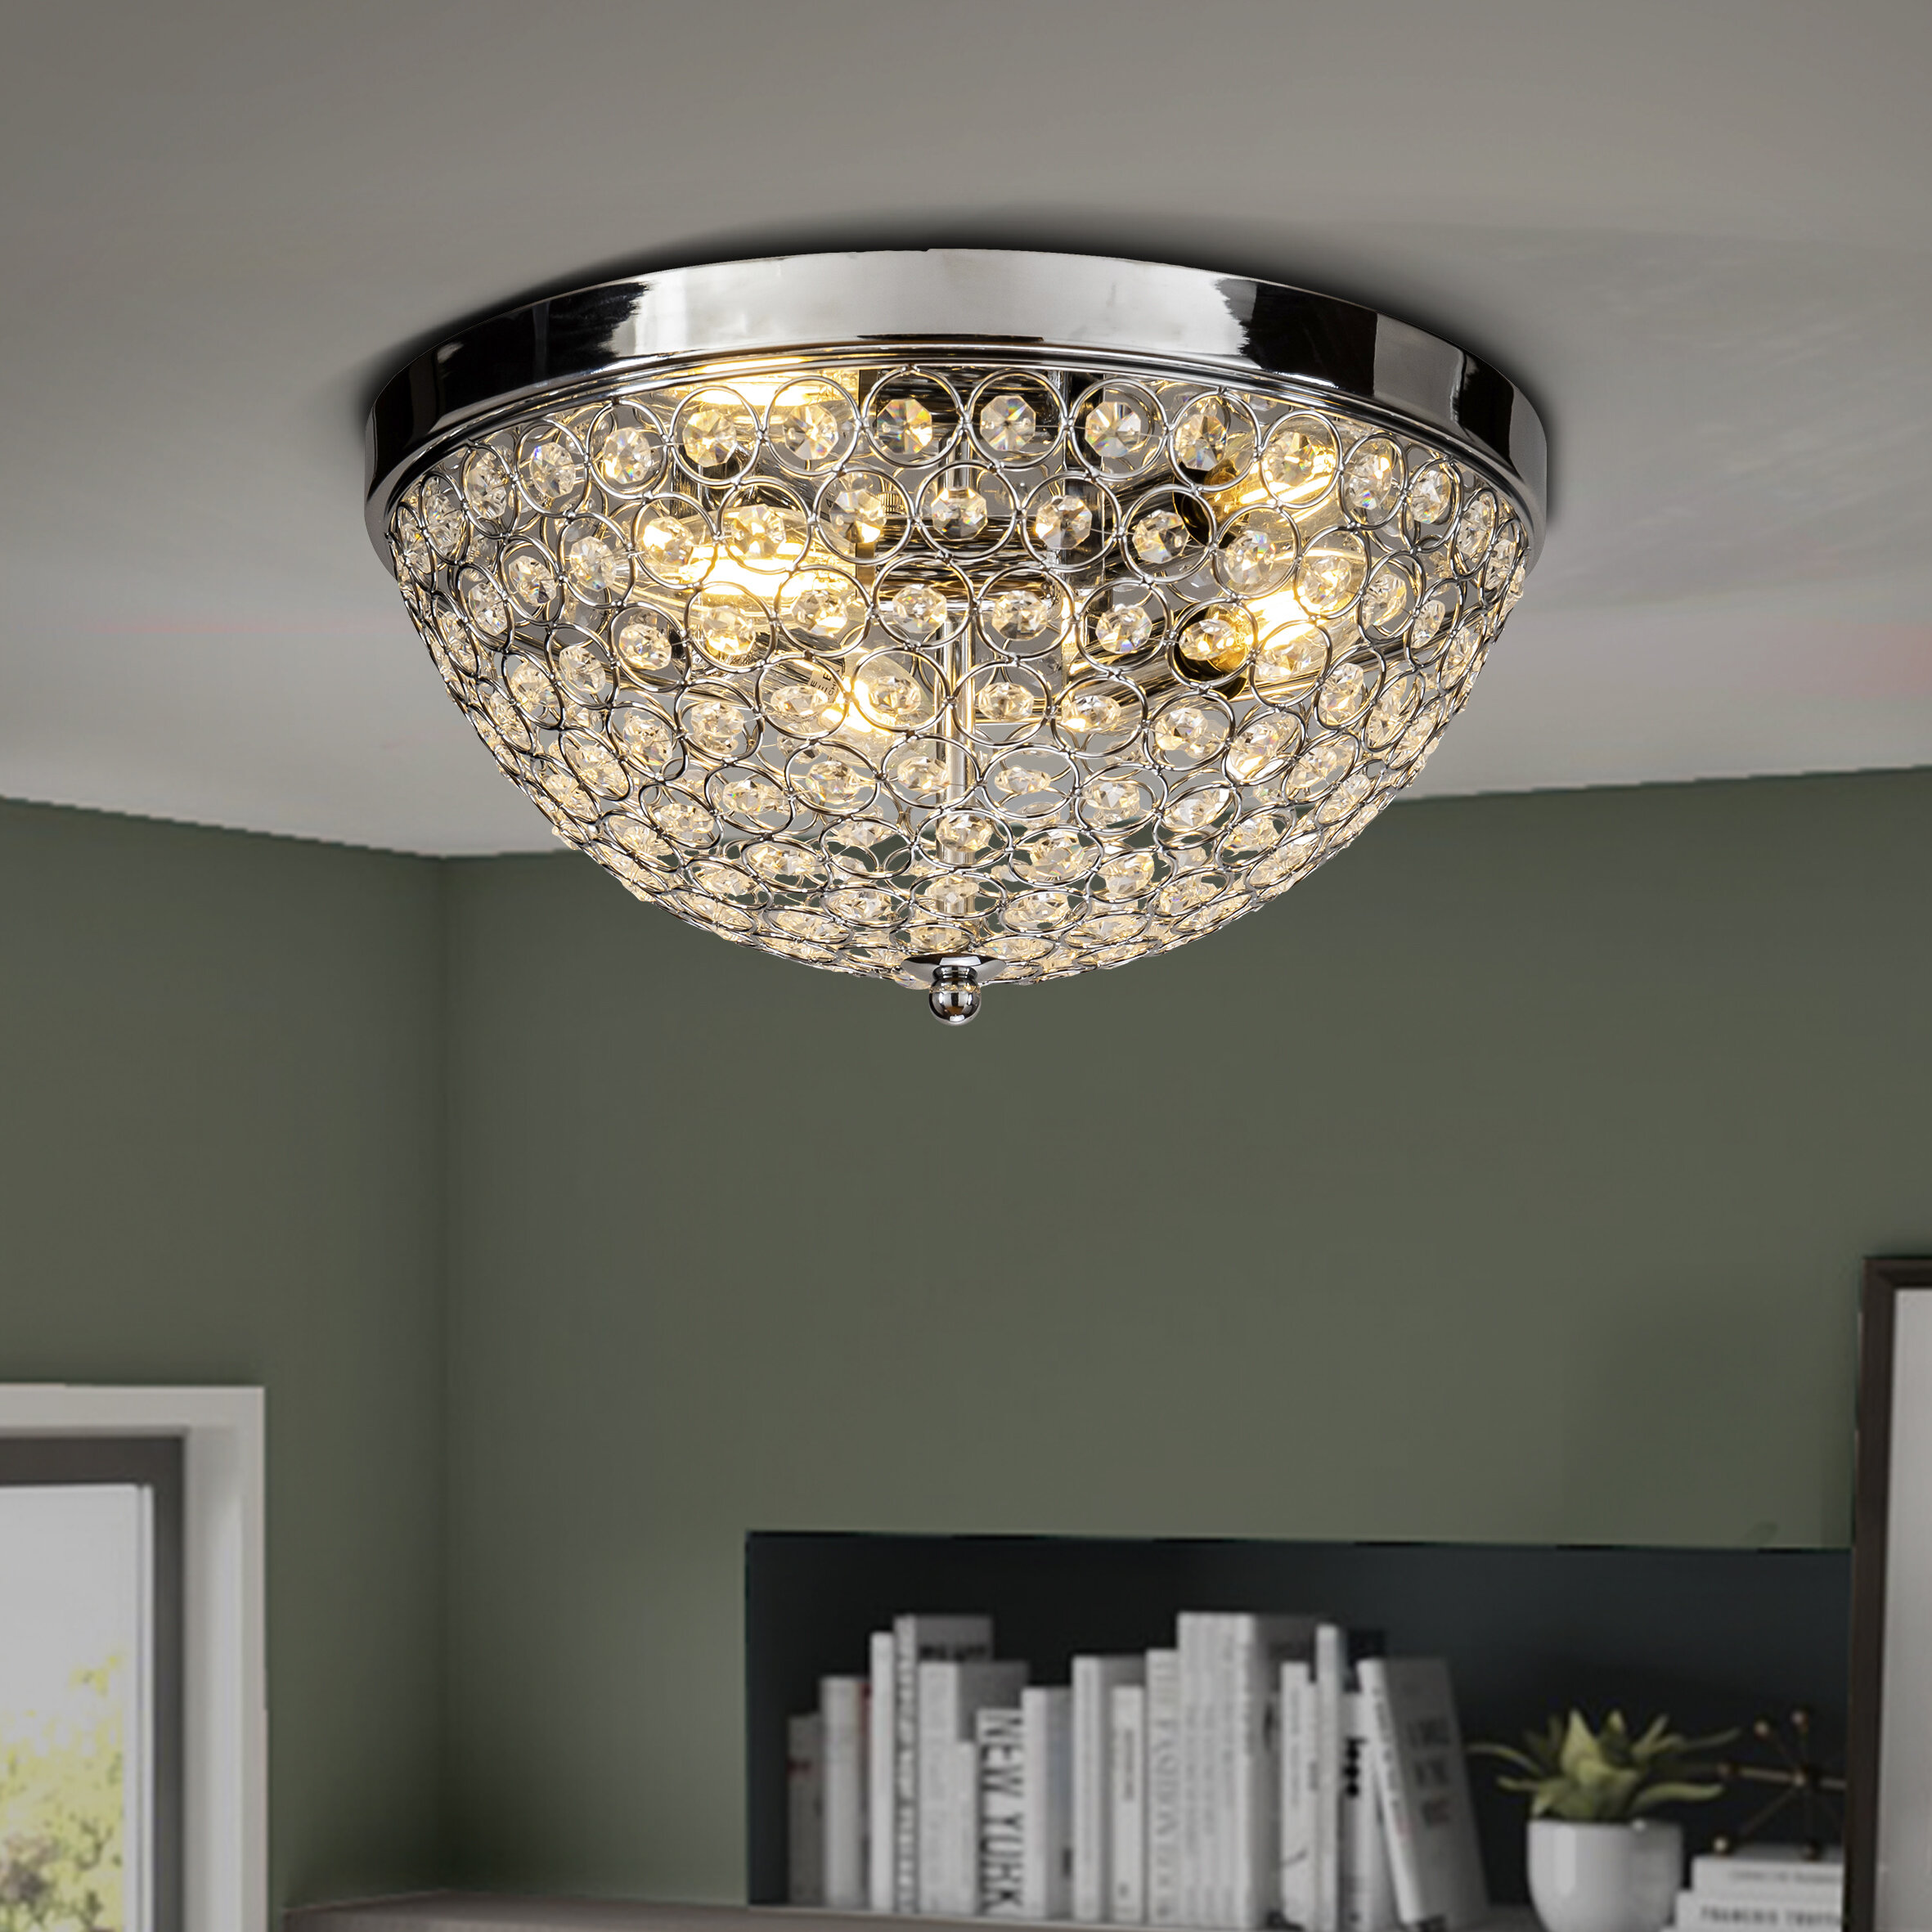 Unique Statement Flush Mount Lighting You Ll Love In 2021 Wayfair